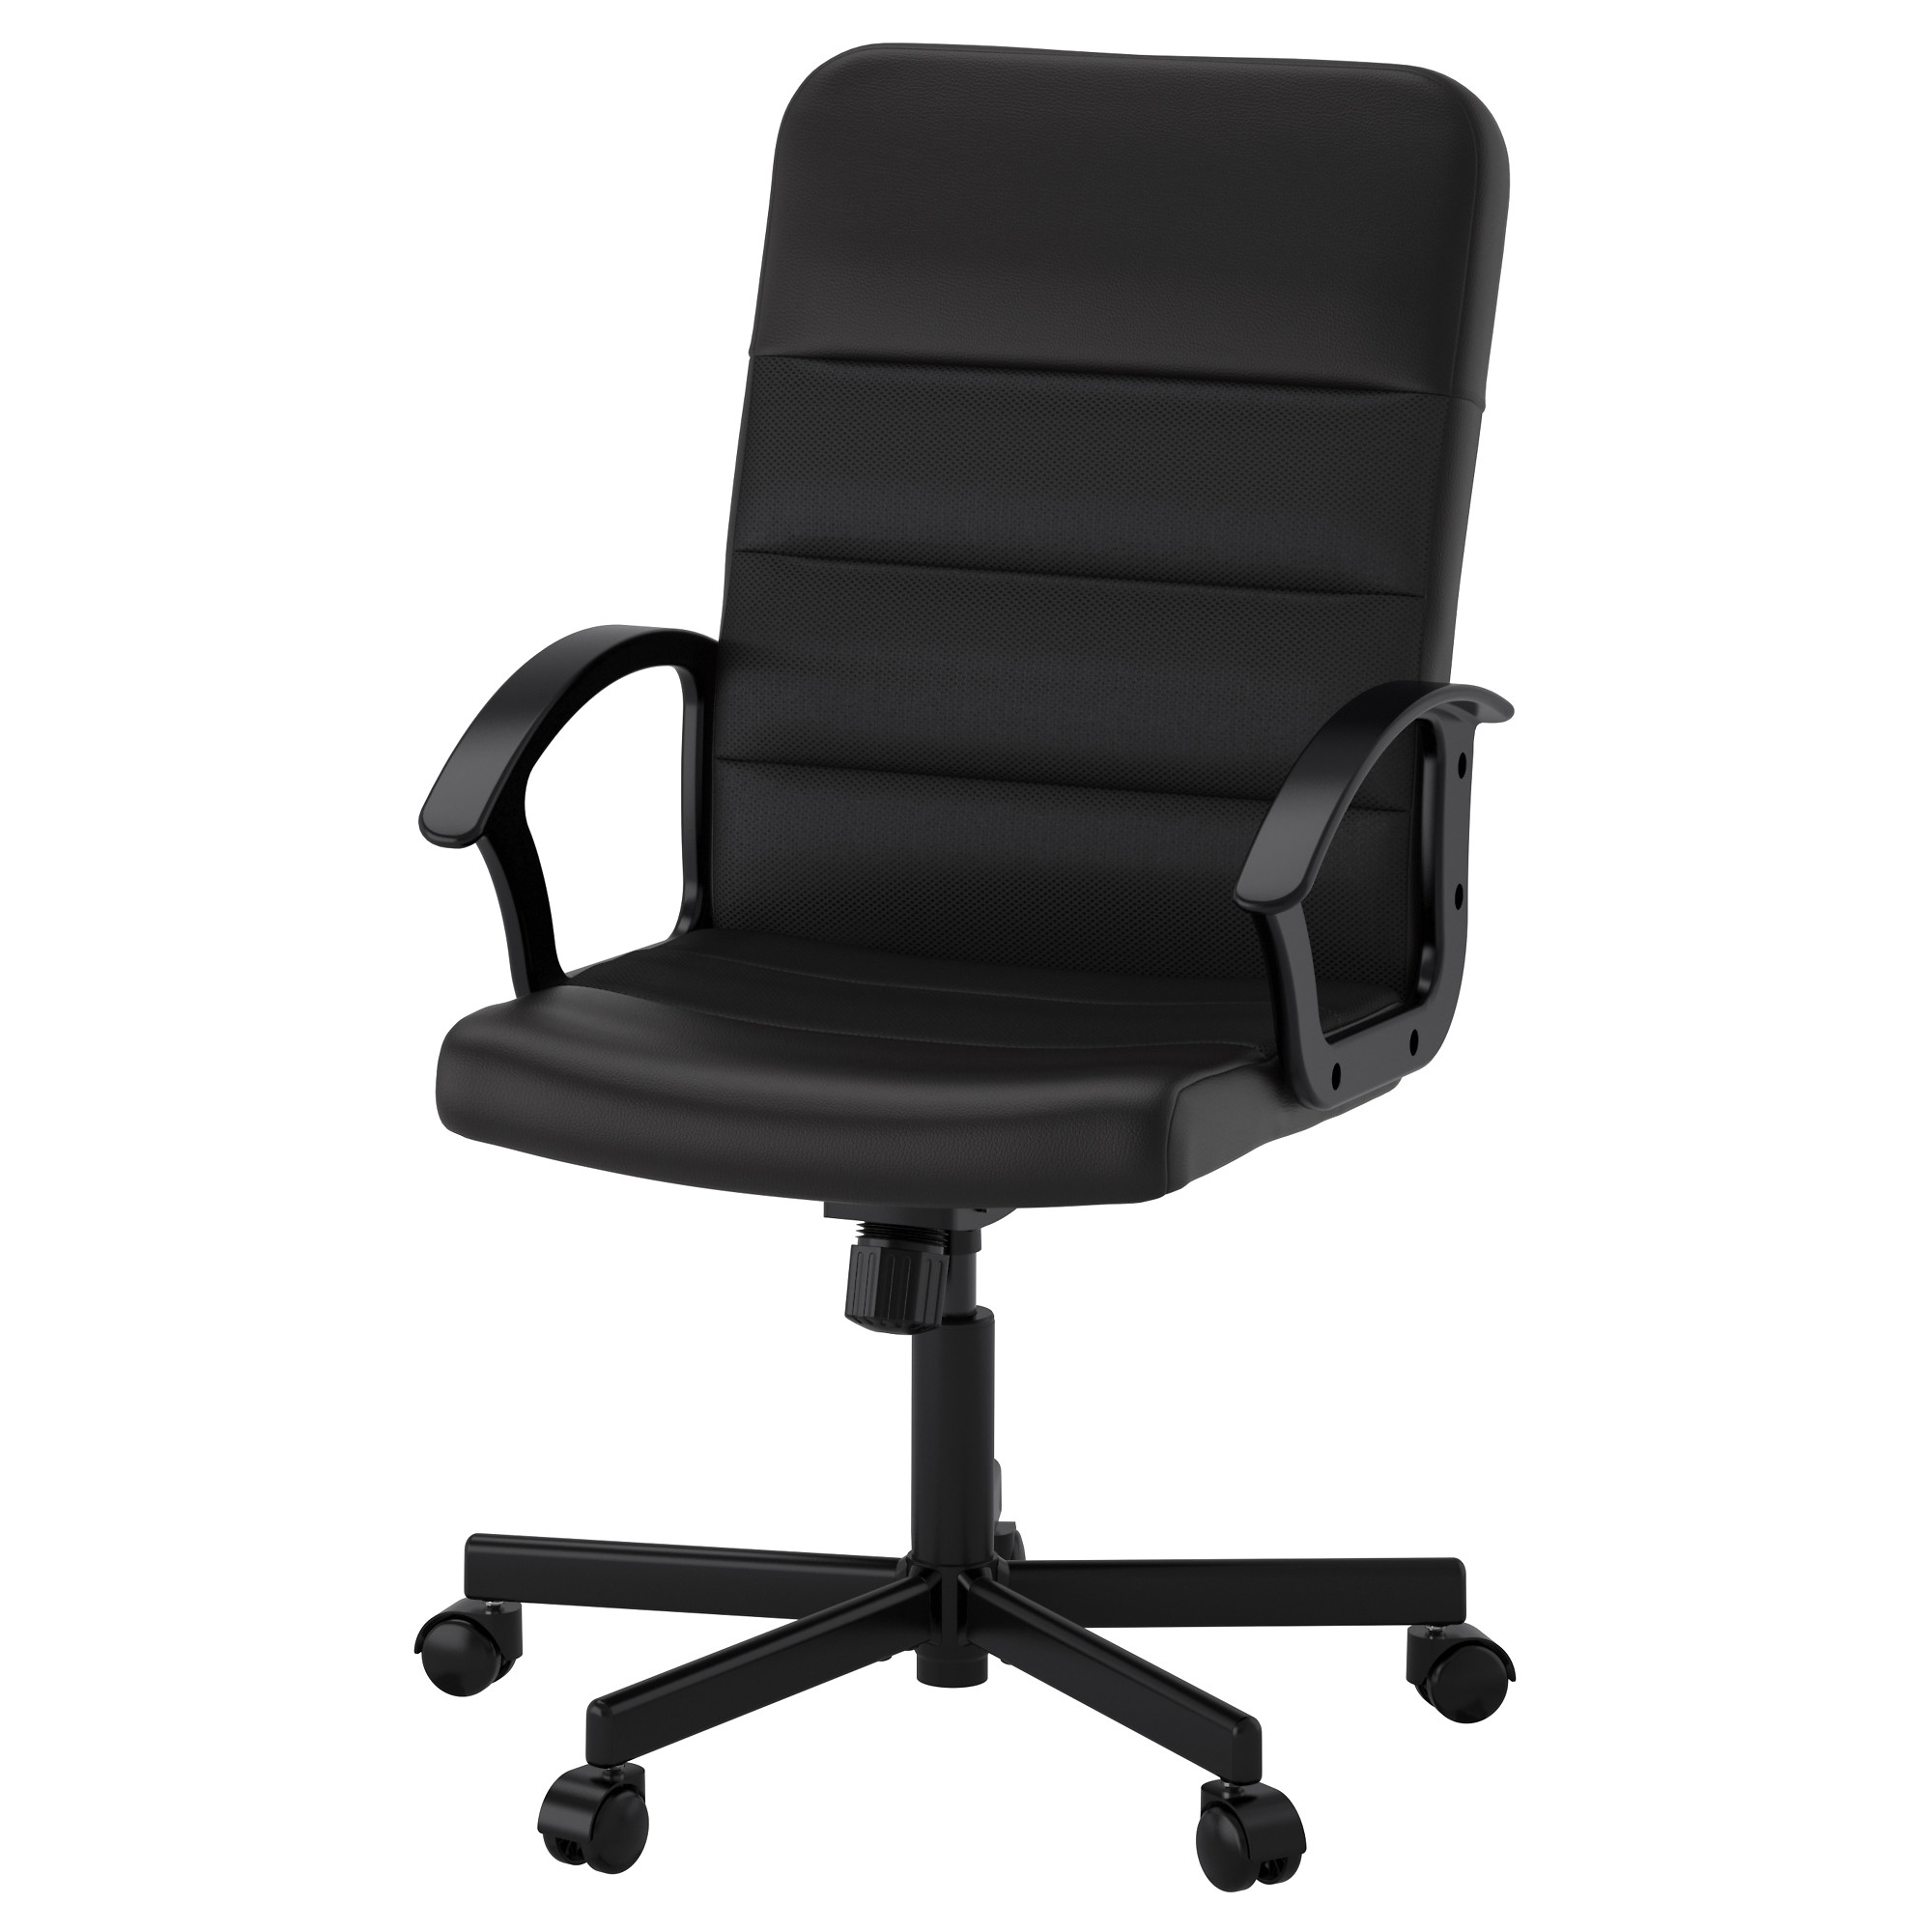 office chairs inter ikea systems b.v. 1999 - 2017 | privacy policy QFDZQDW